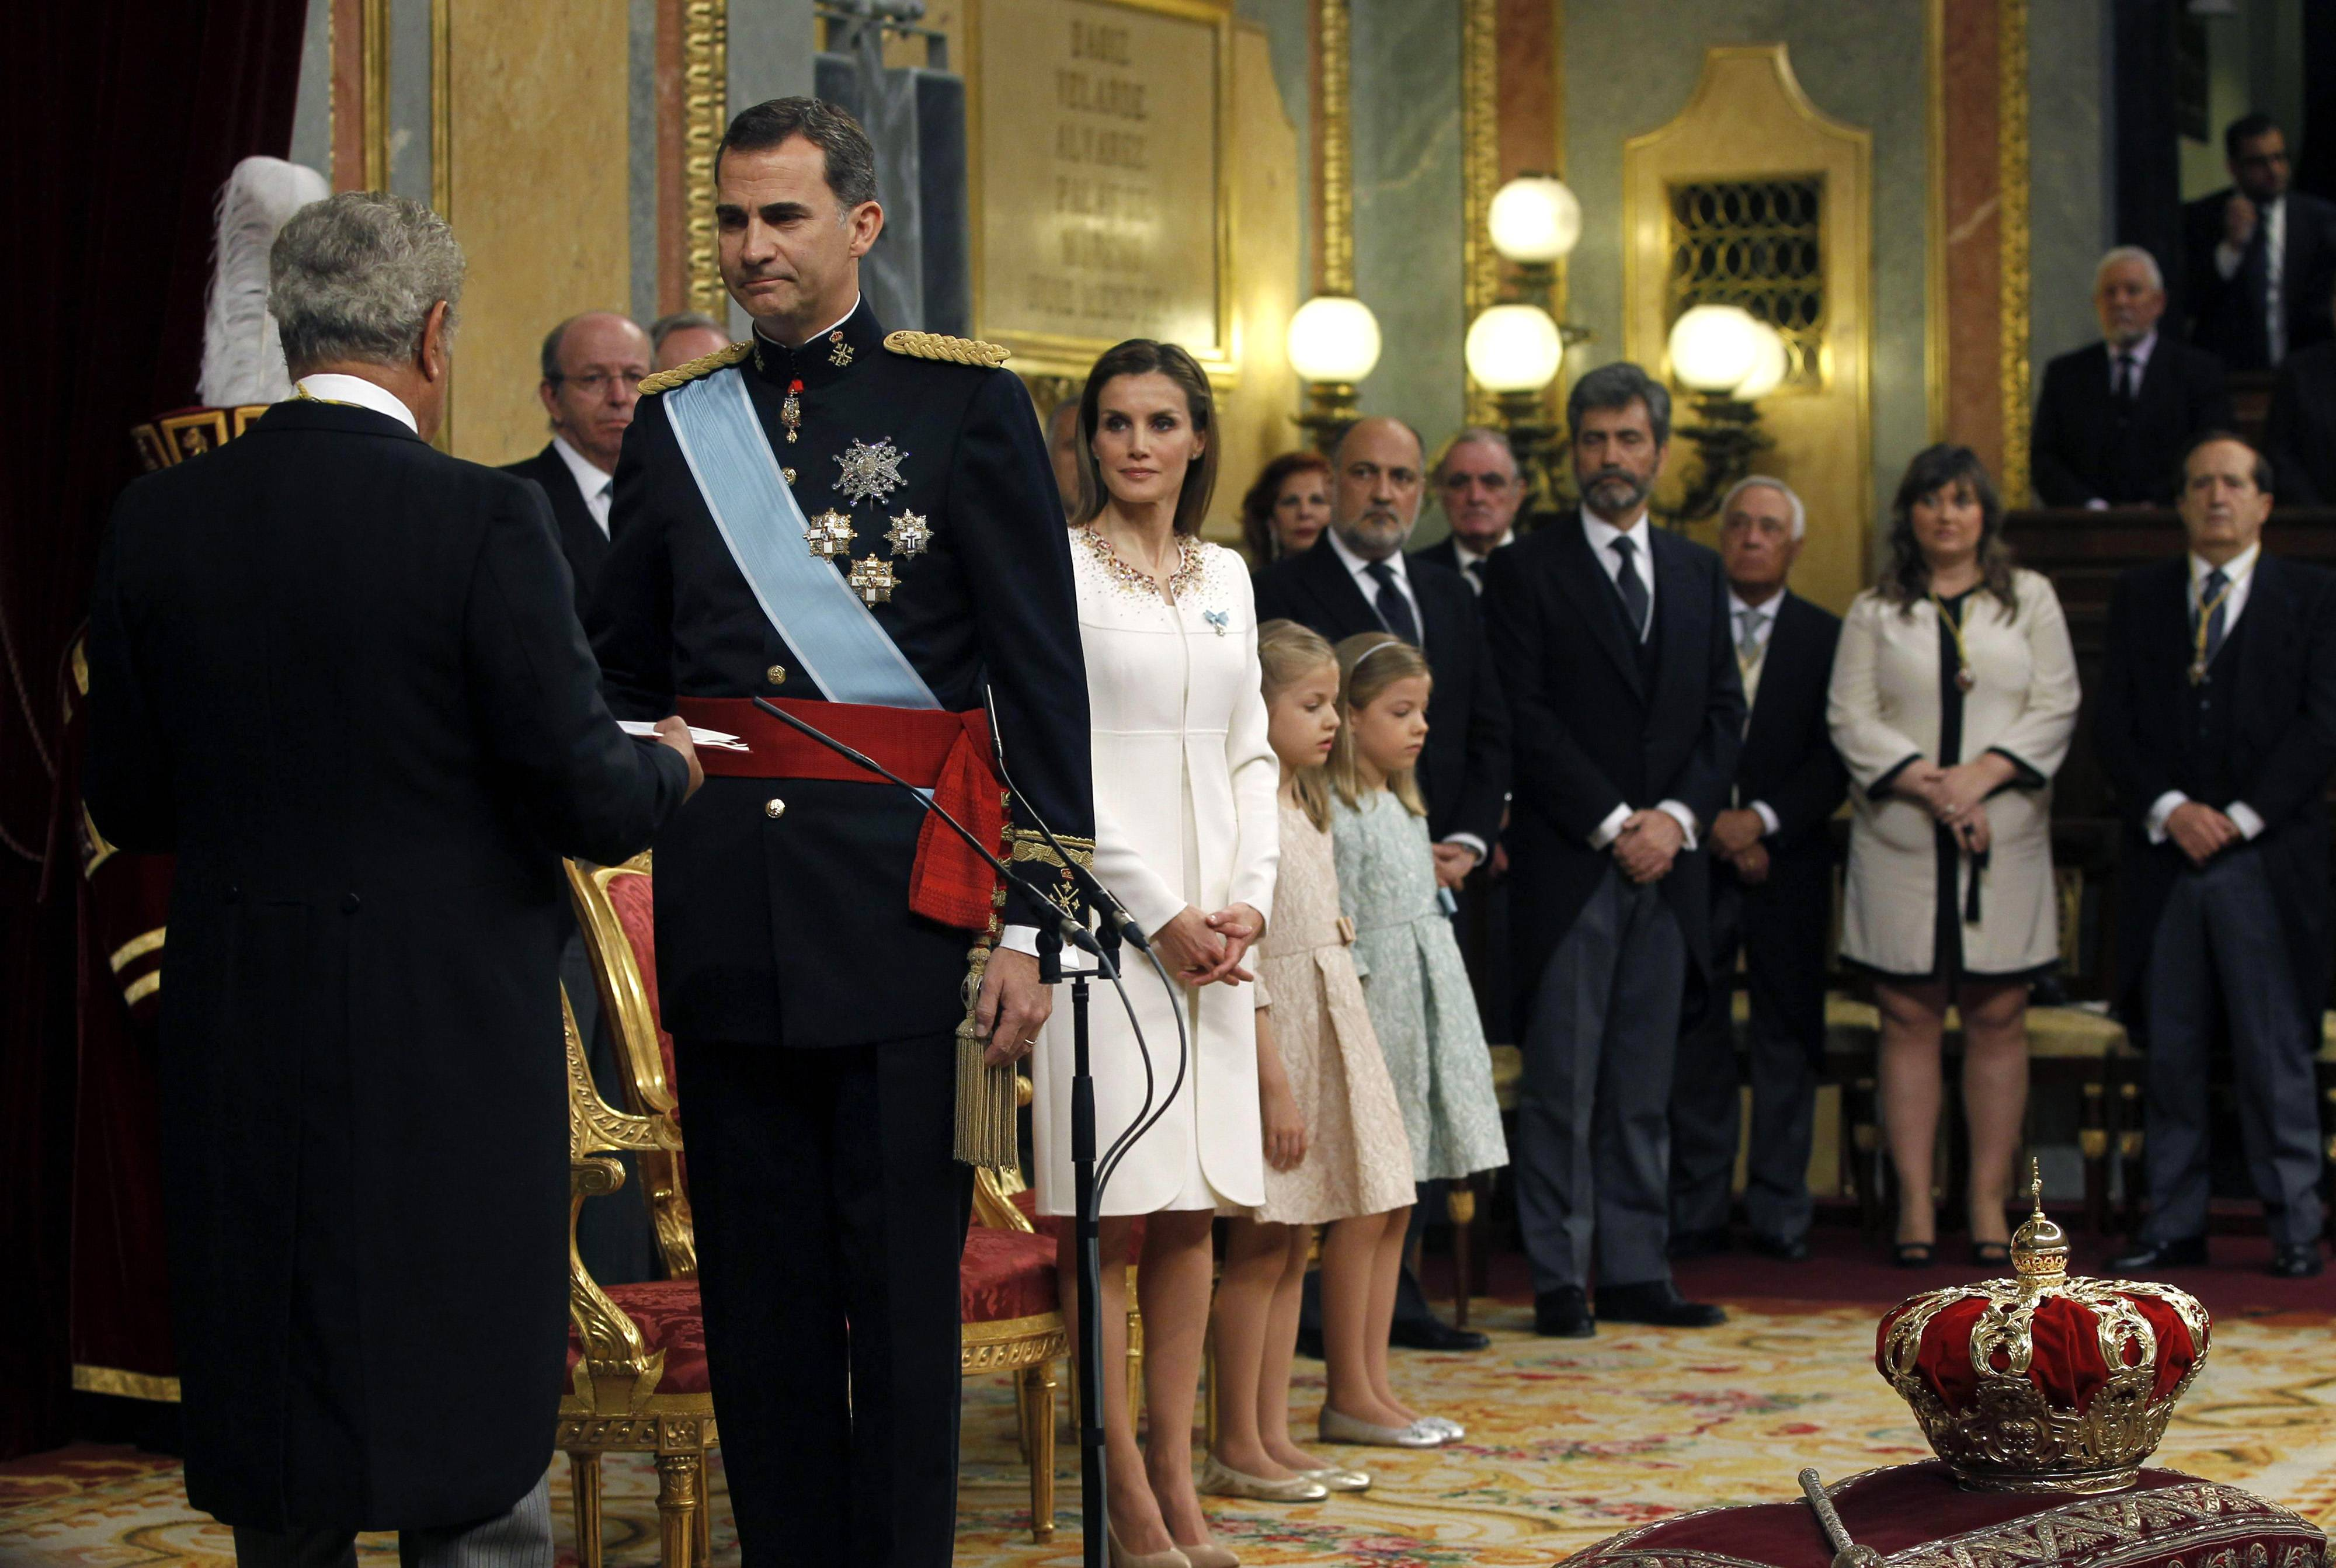 Spain's King Felipe VI, left, is sworn in Thursday as the new Spanish King during ceremony at the Spanish parliament in Madrid. Felipe's father Juan Carlos, who reigned during four decades, stepped down after signing an abdication law Wednesday so that younger royal blood can rally a country beset by economic problems, including an unemployment rate of 25 percent.